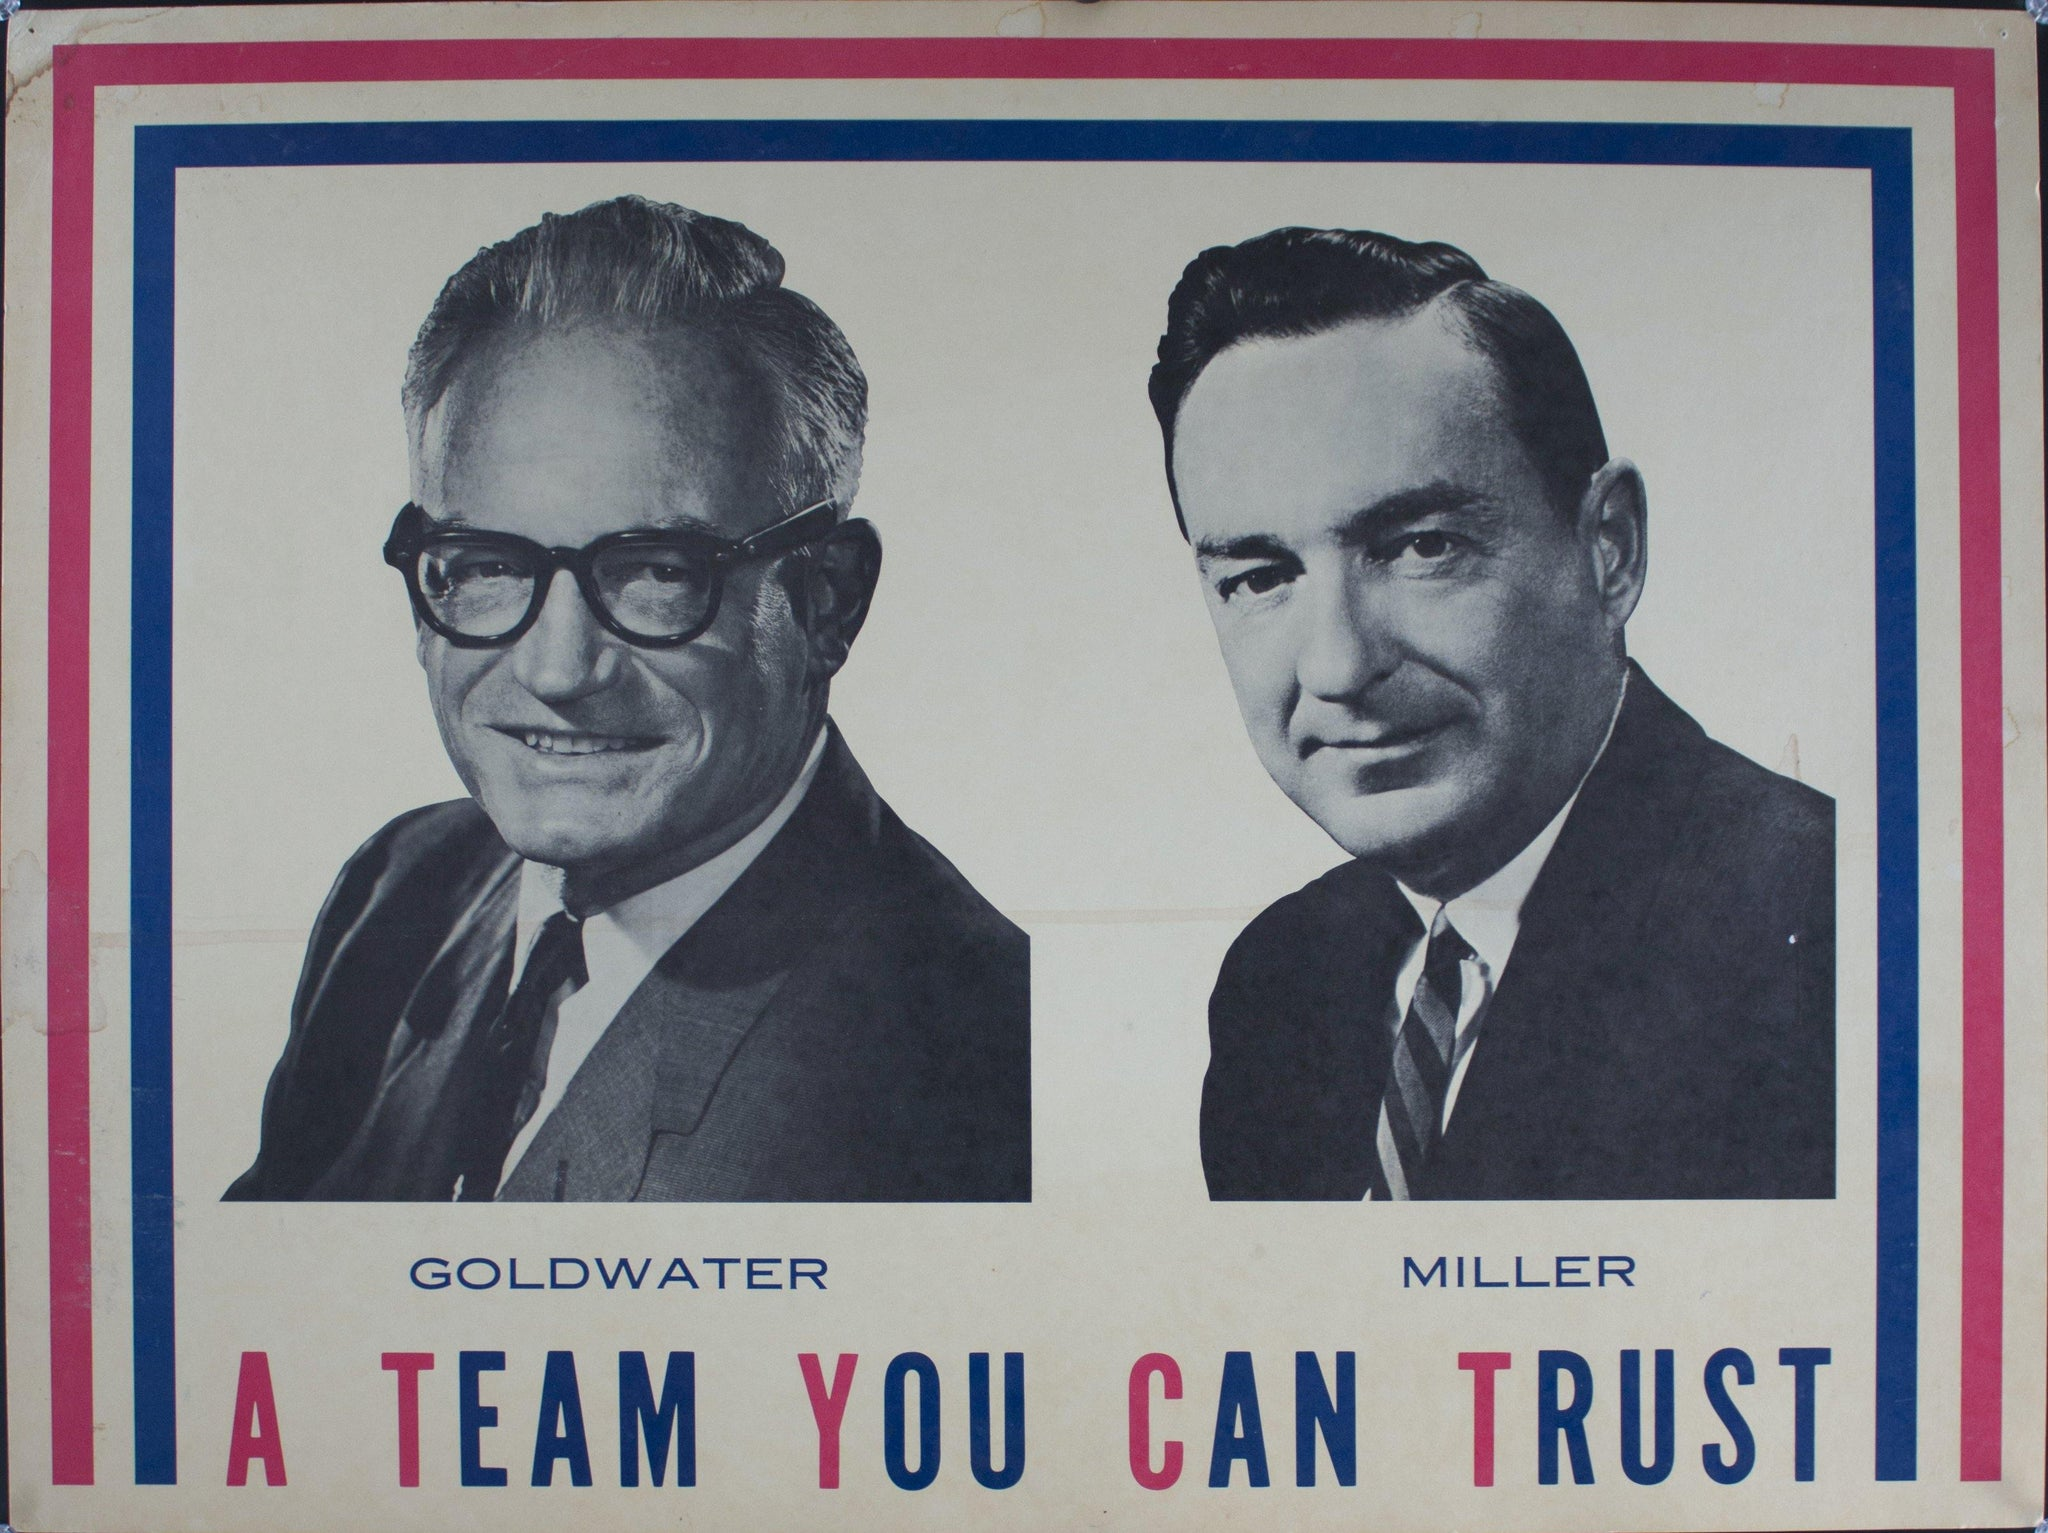 1968 Goldwater | Miller | A Team You Can Trust - Golden Age Posters